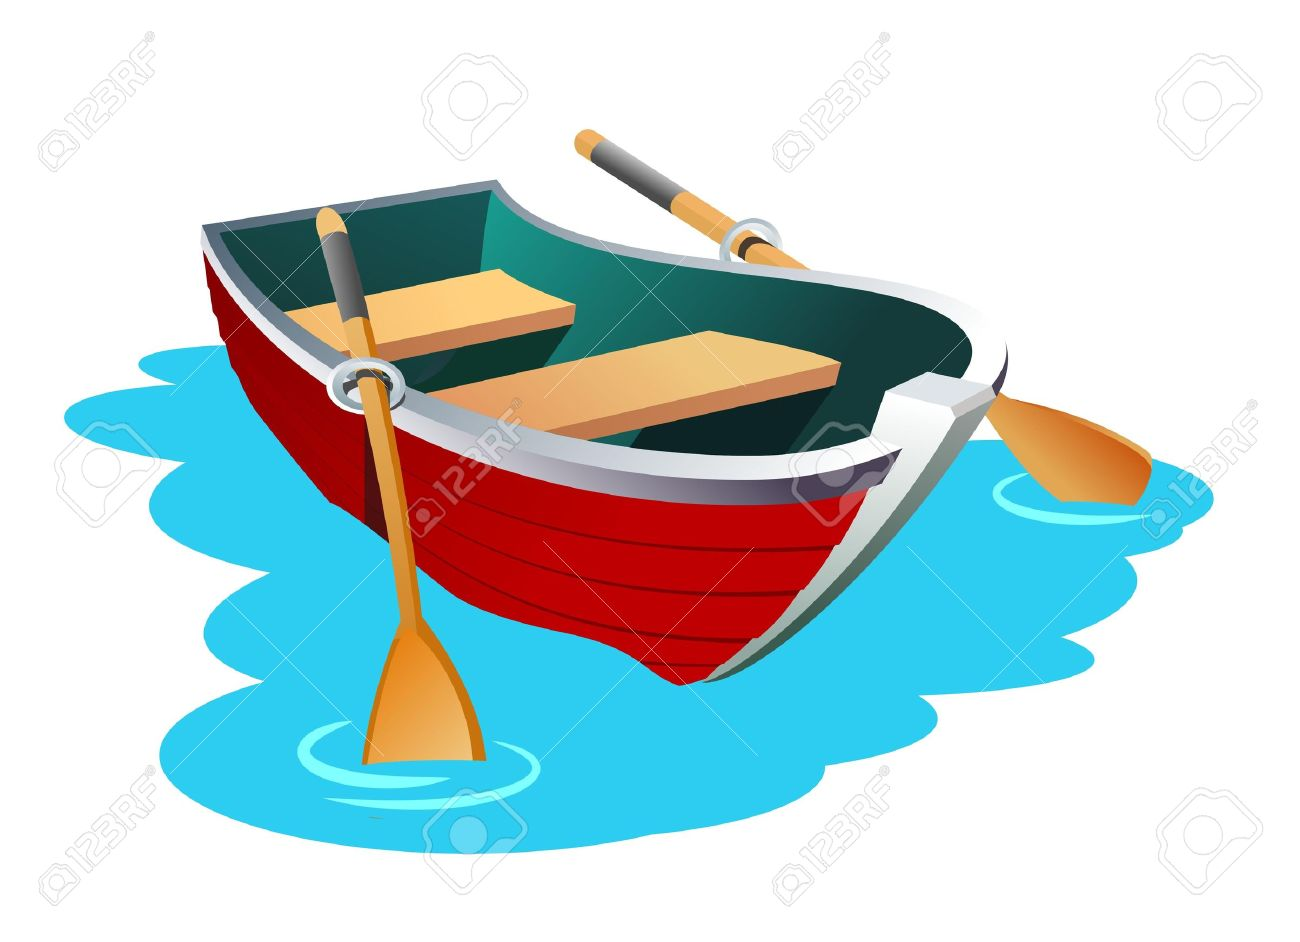 free clip art rowboat - photo #13